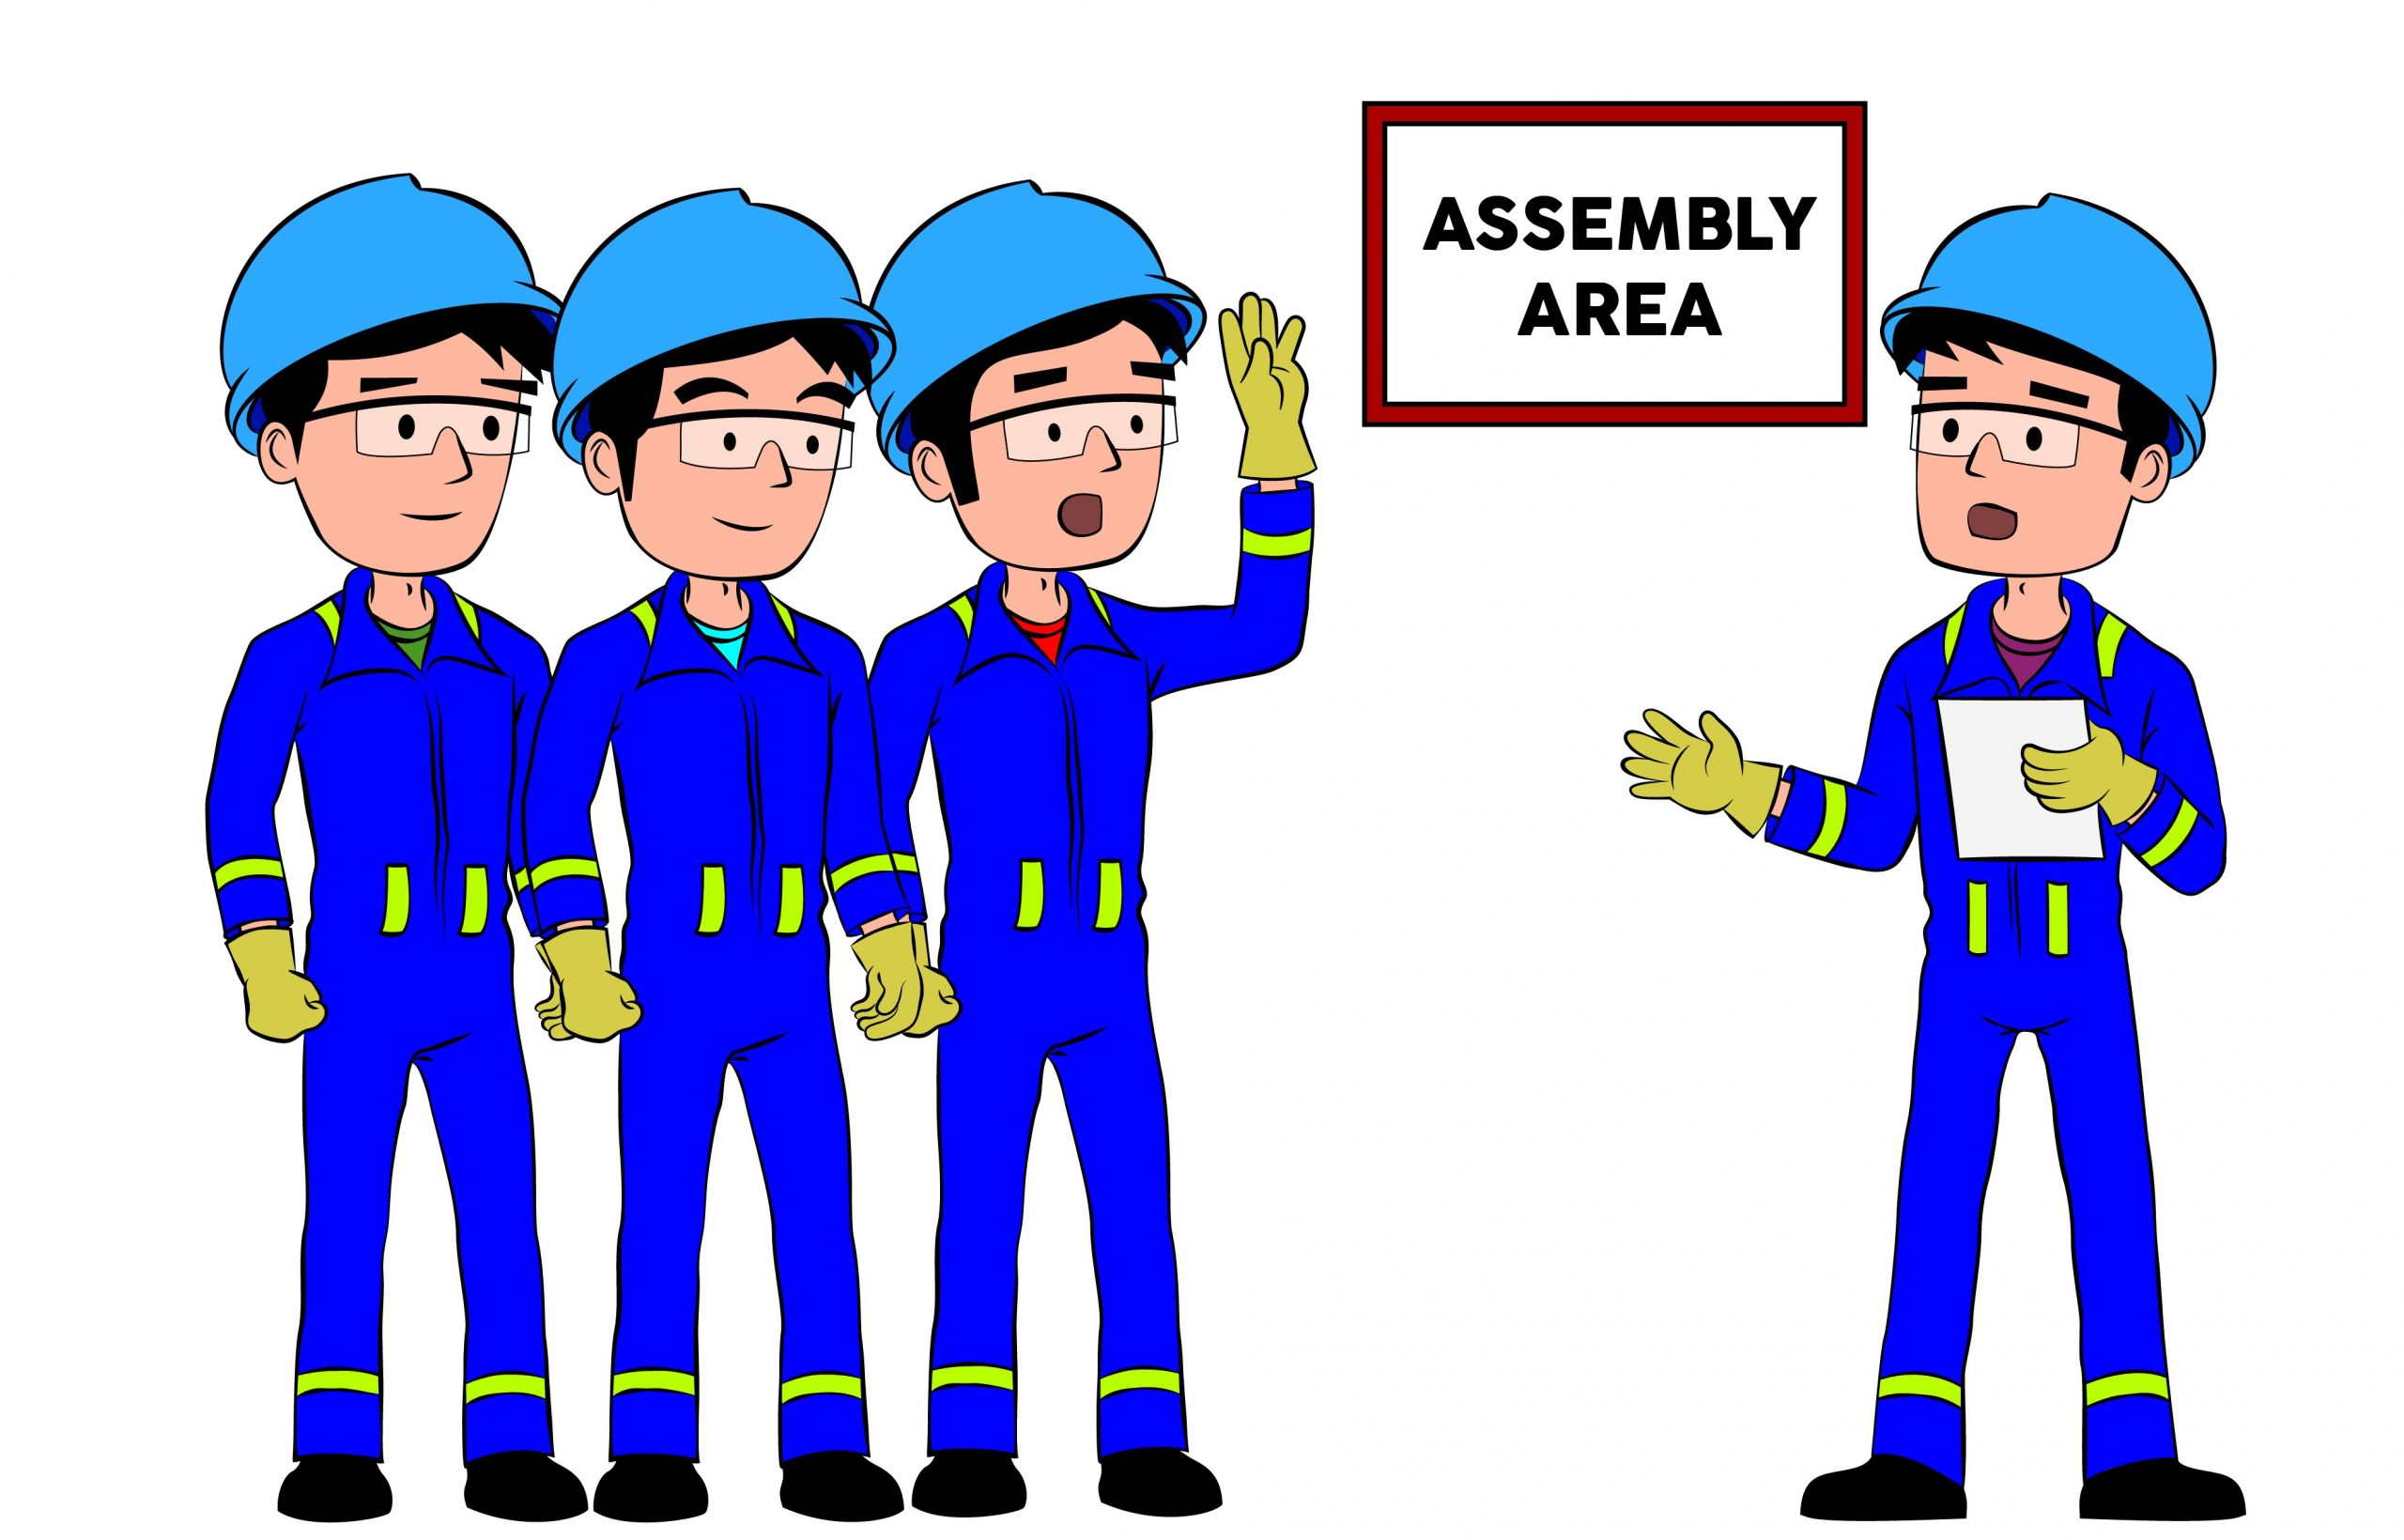 assembly area scaled